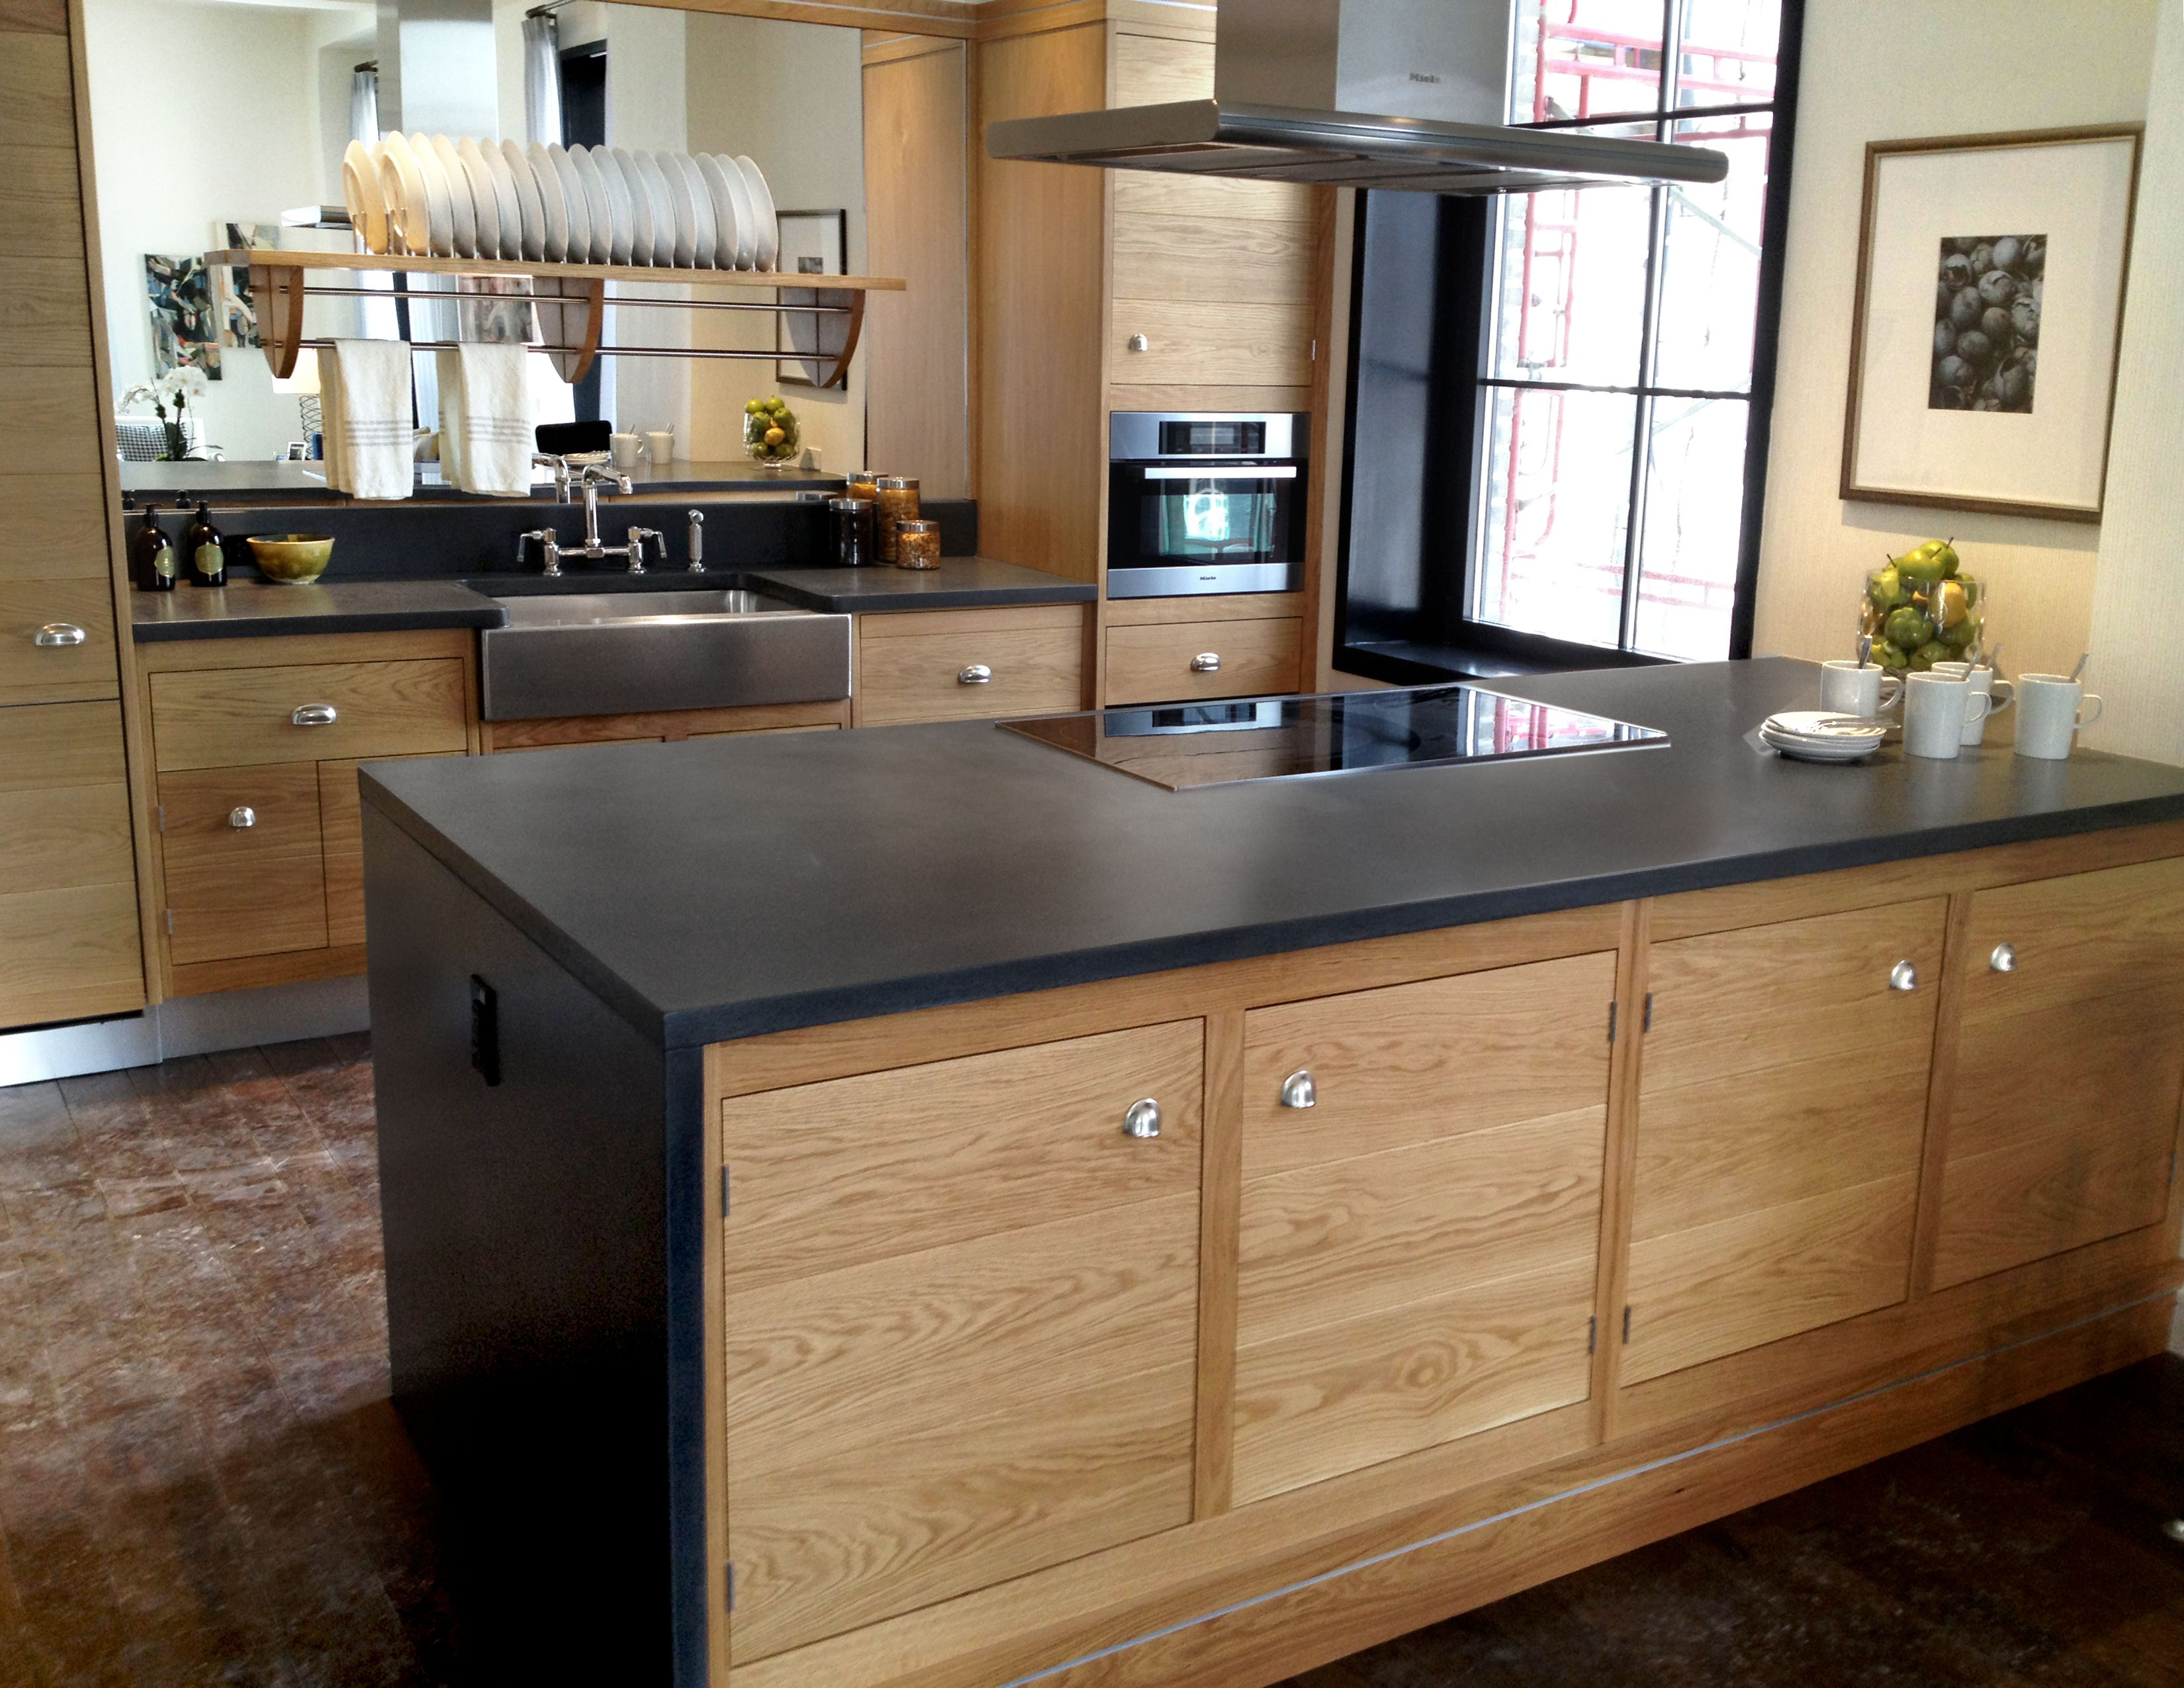 Finished Concrete Countertops 4 Most Amazing Waterfall Concrete Countertops Properties